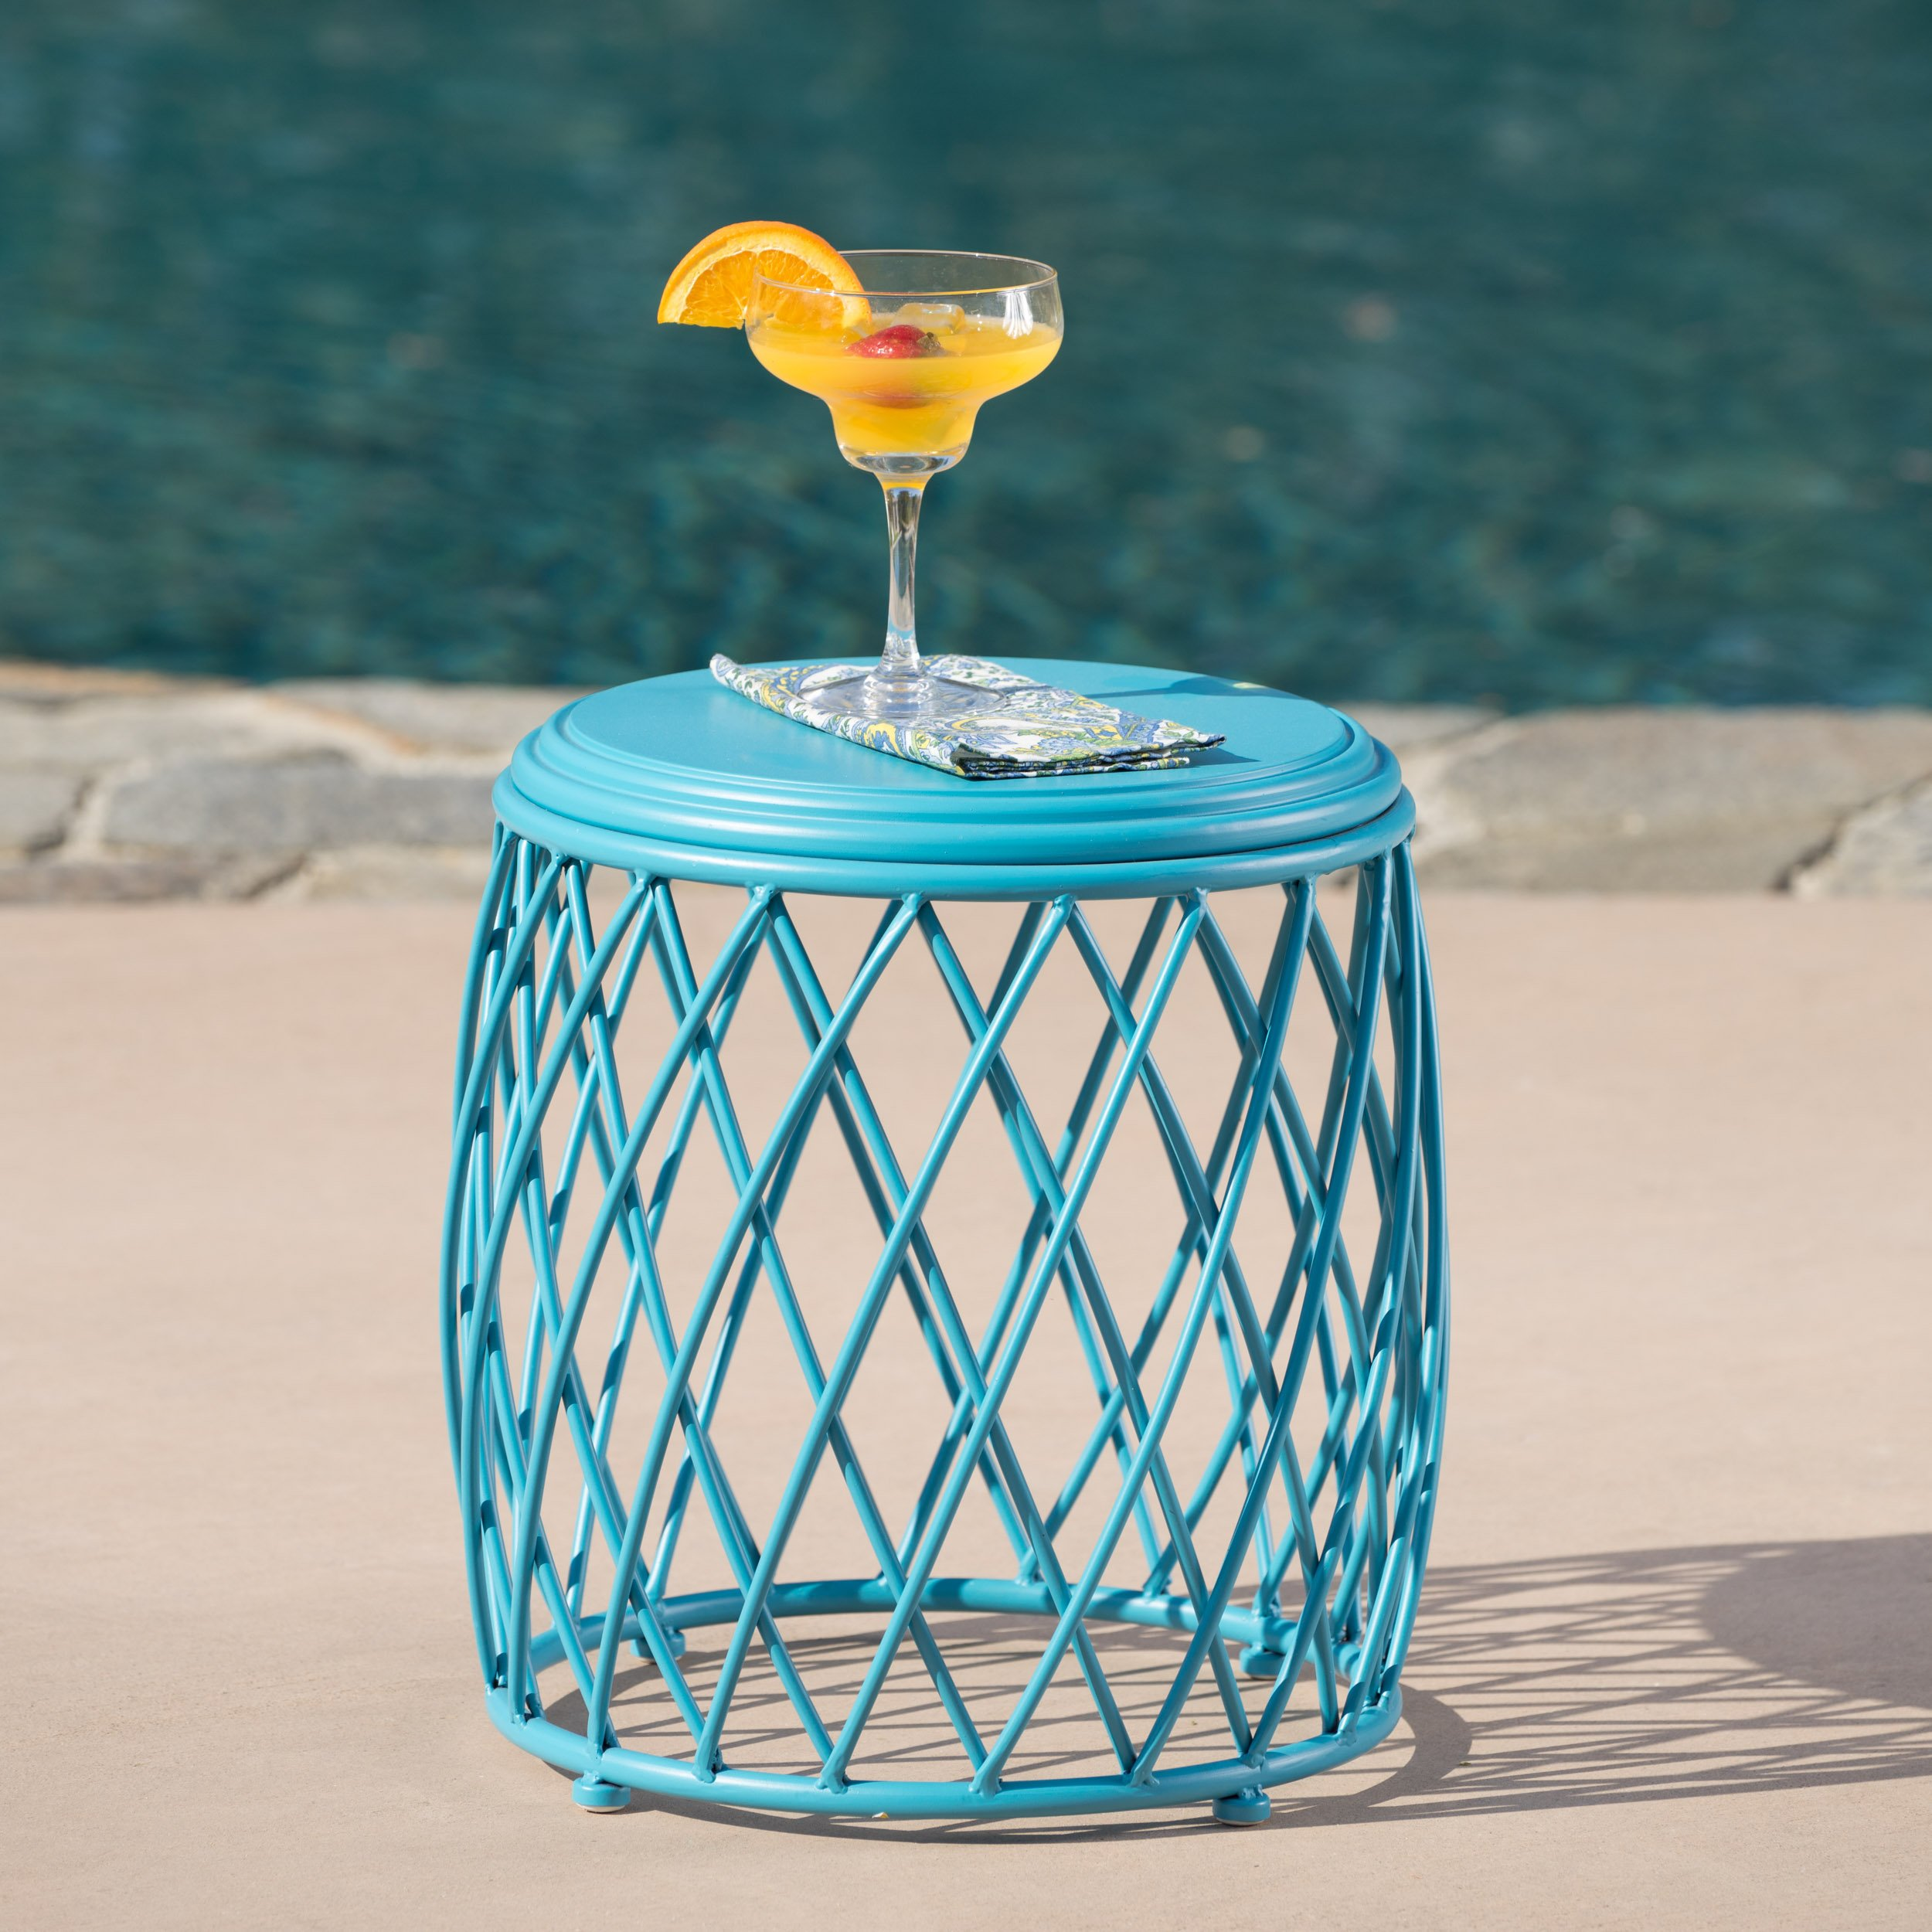 Alameda Outdoor 15 Inch Lattice Iron Side Table (Matte Blue) by GDF Studio